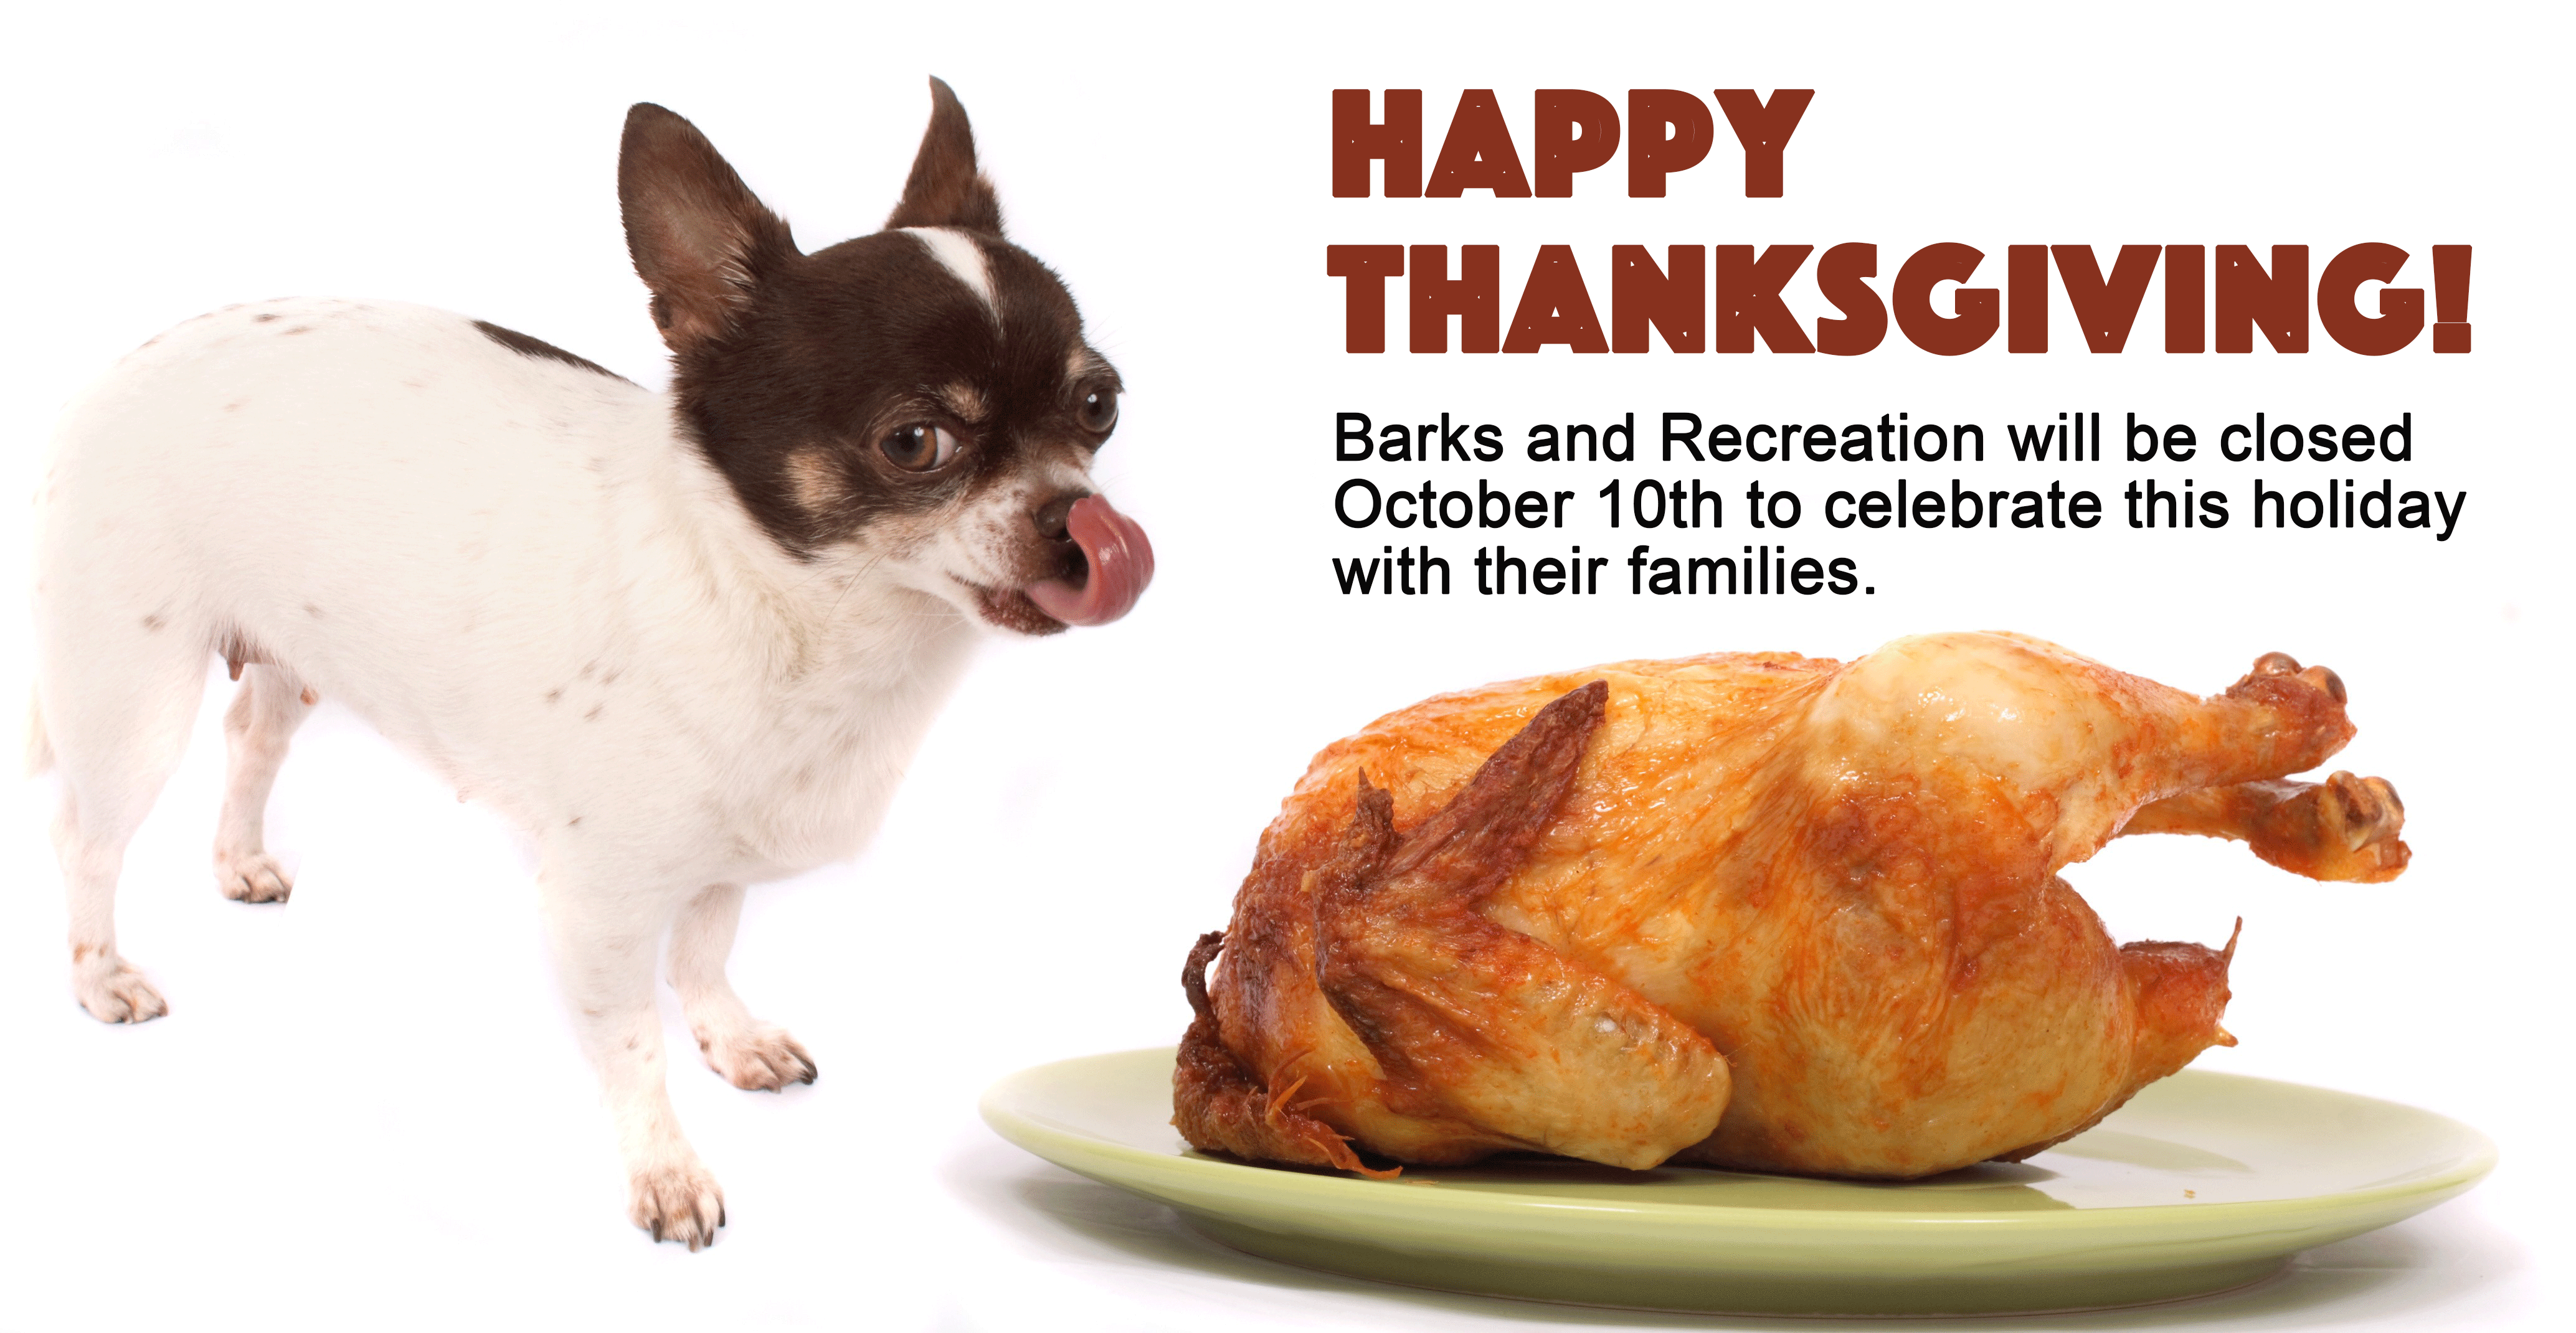 barks-and-reacreation-in-trail-bc-thanksgiving-hours-2016